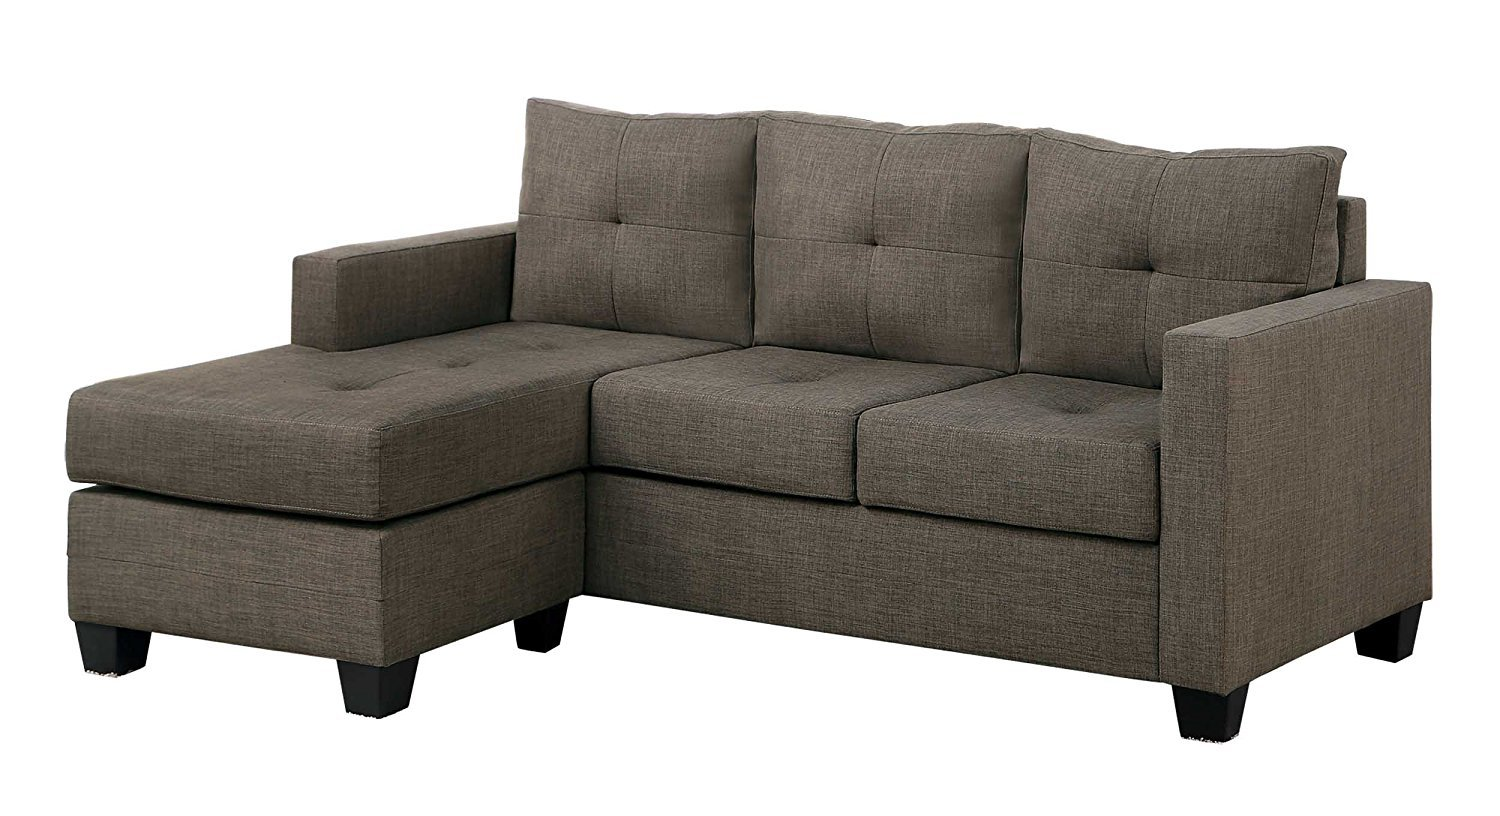 Tufted sectional sofa with chaise home furniture design Chaise design confortable